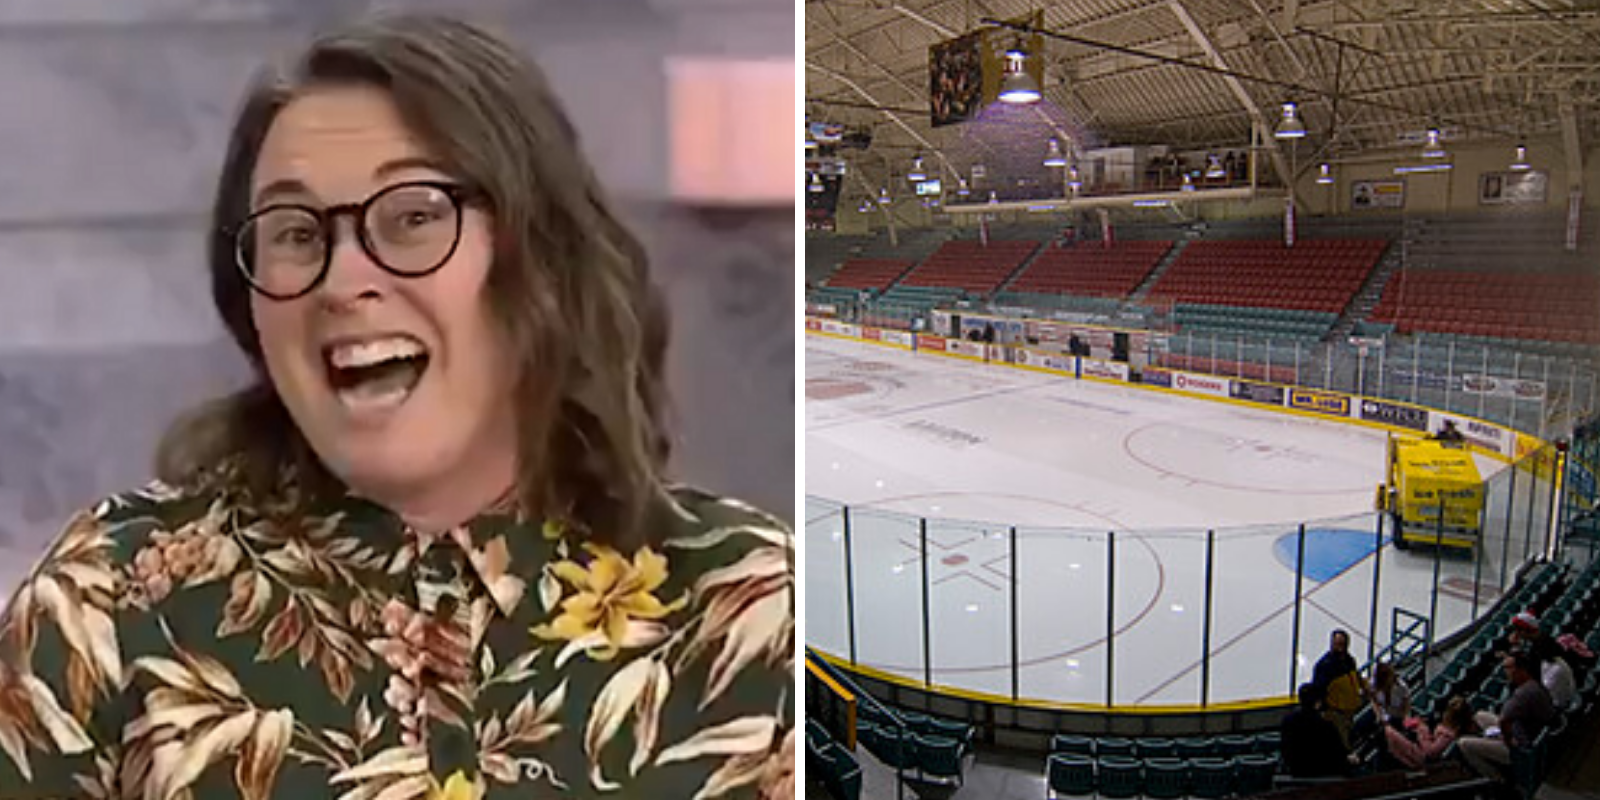 #FireJessAllen trends again on Twitter as The Social host who called hockey players 'white boys', 'bullies' clarifies